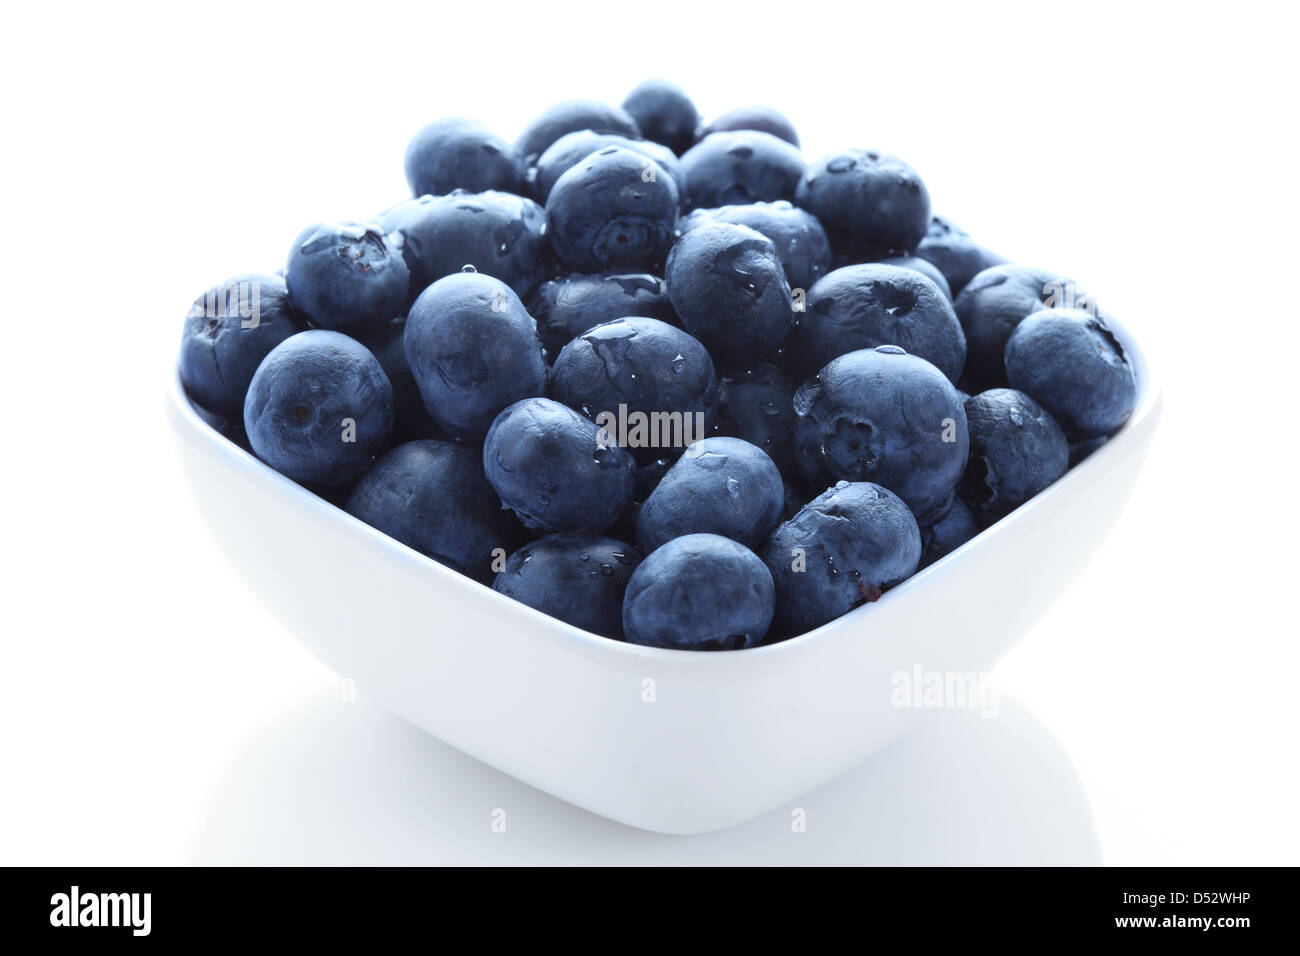 Organic blueberries in high resolution in a white bowl - Stock Image